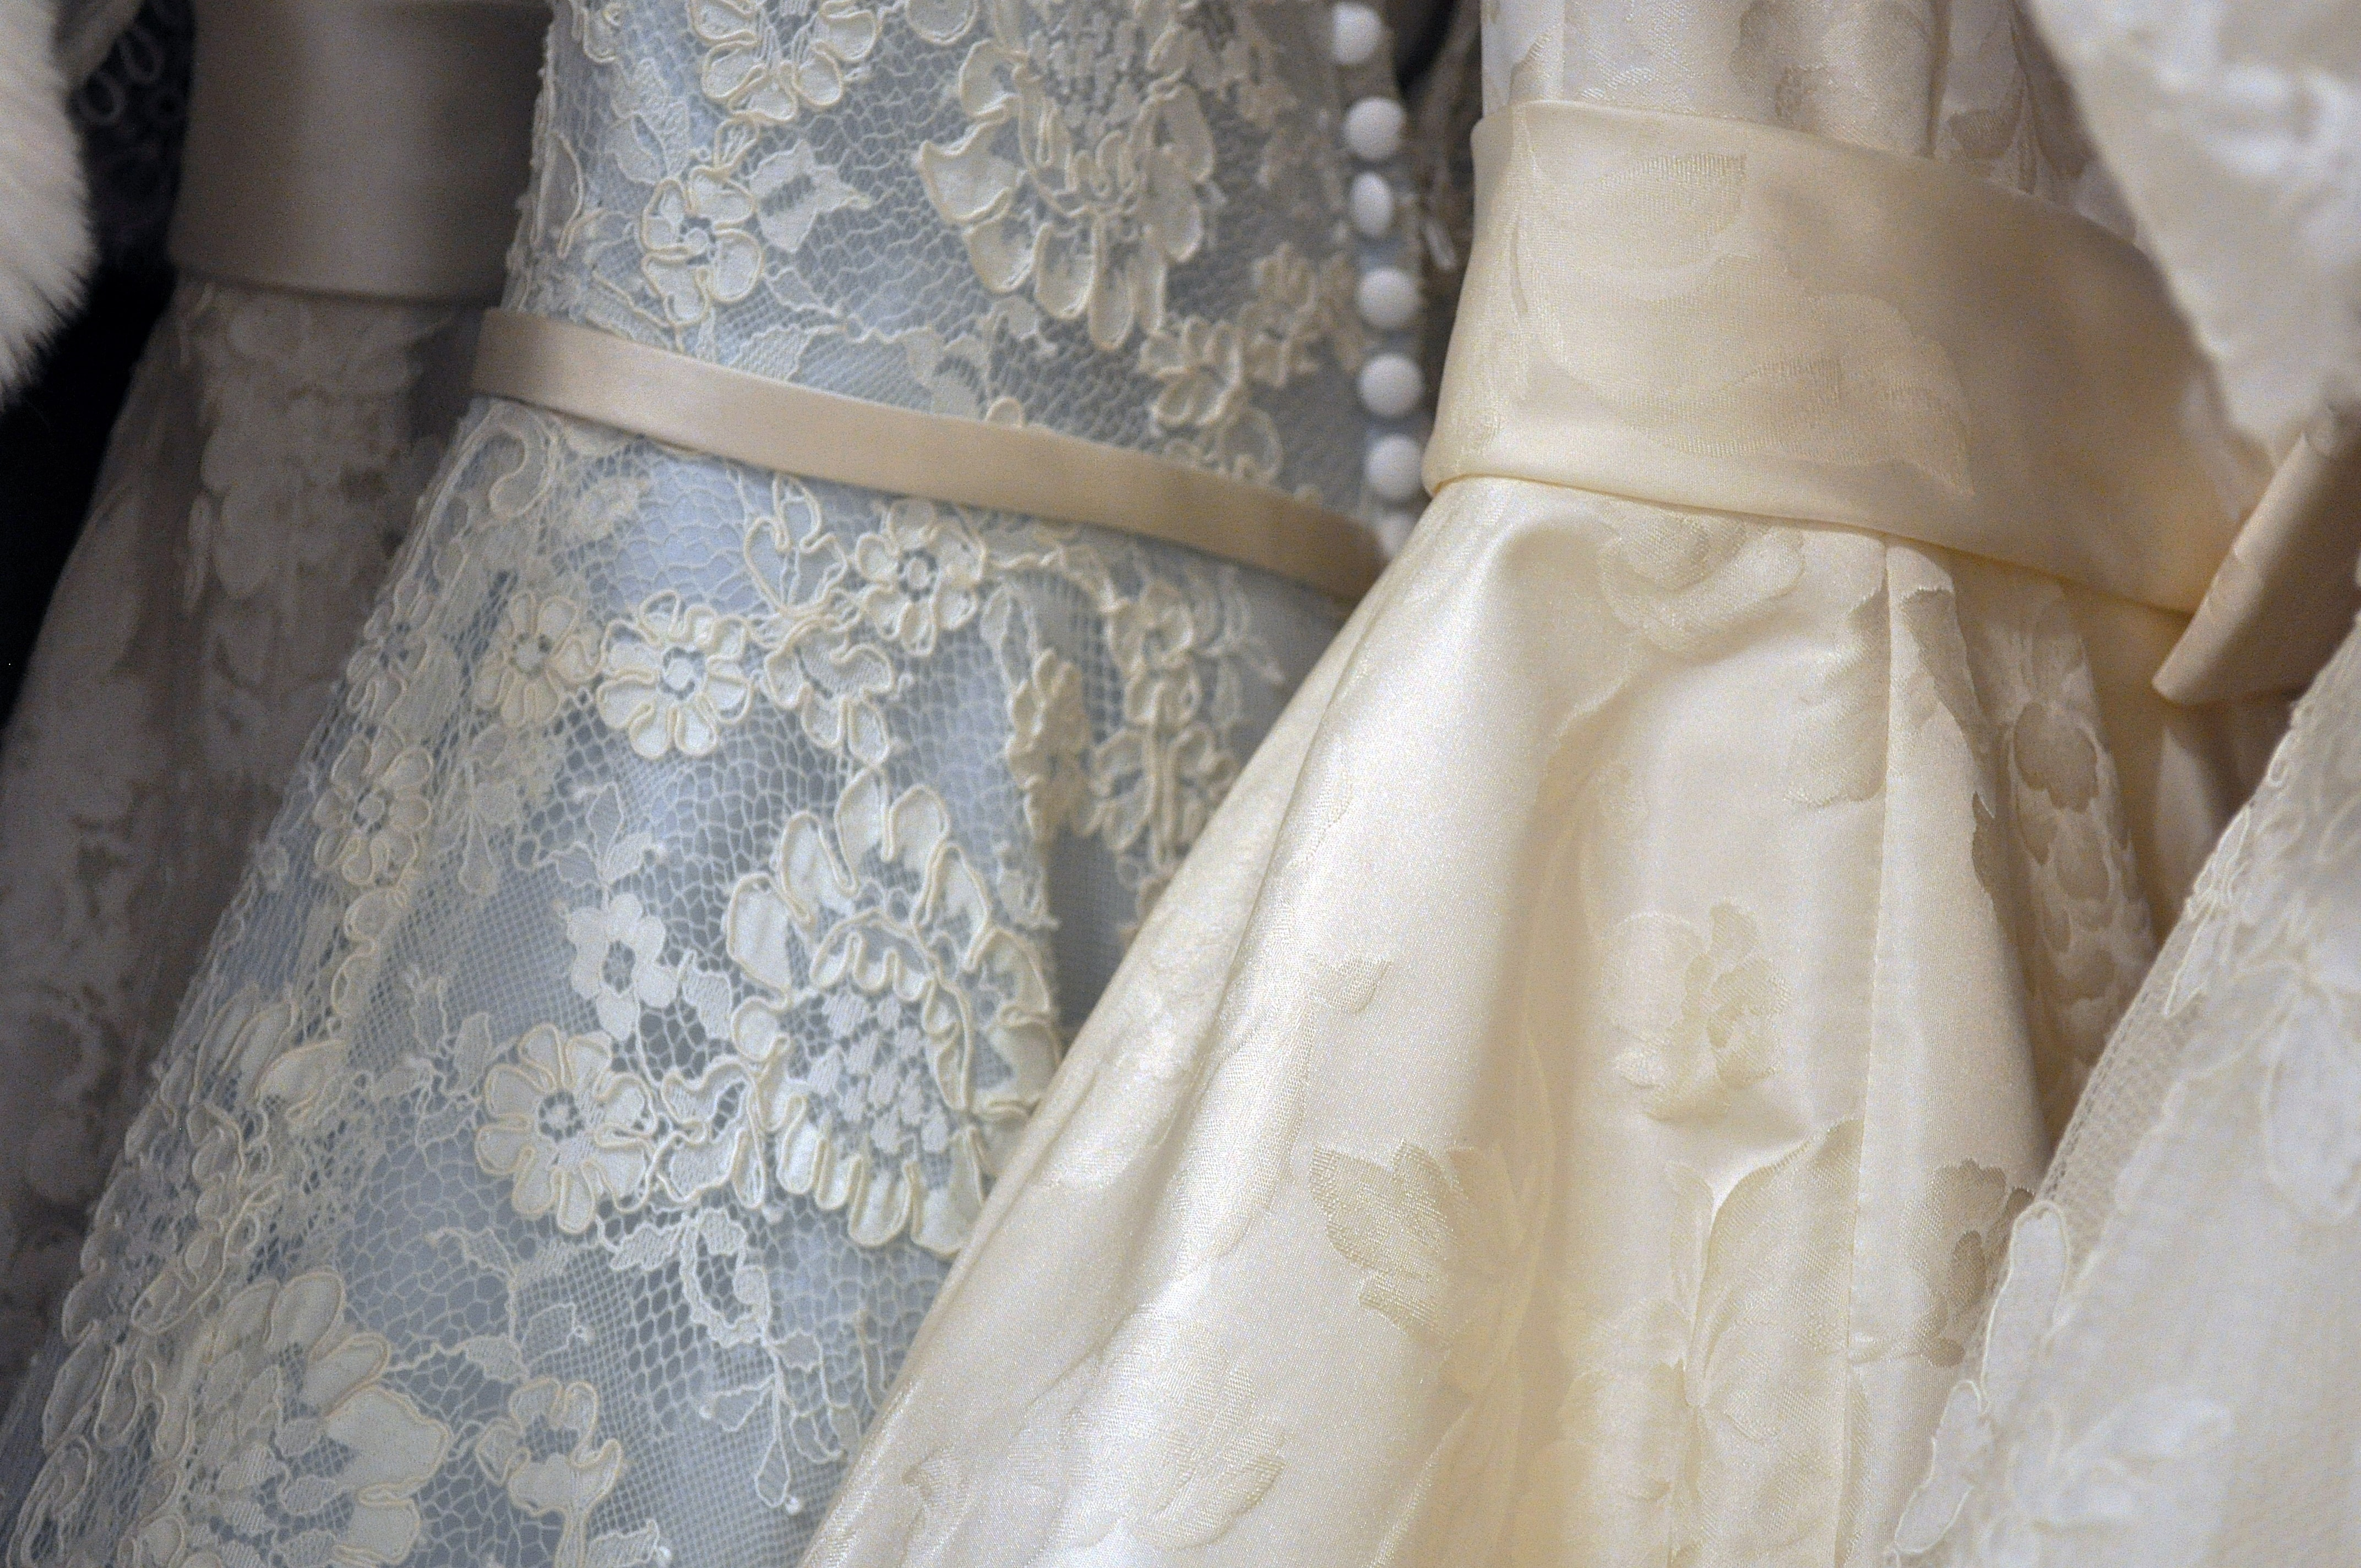 Multiple lace wedding dresses in a row